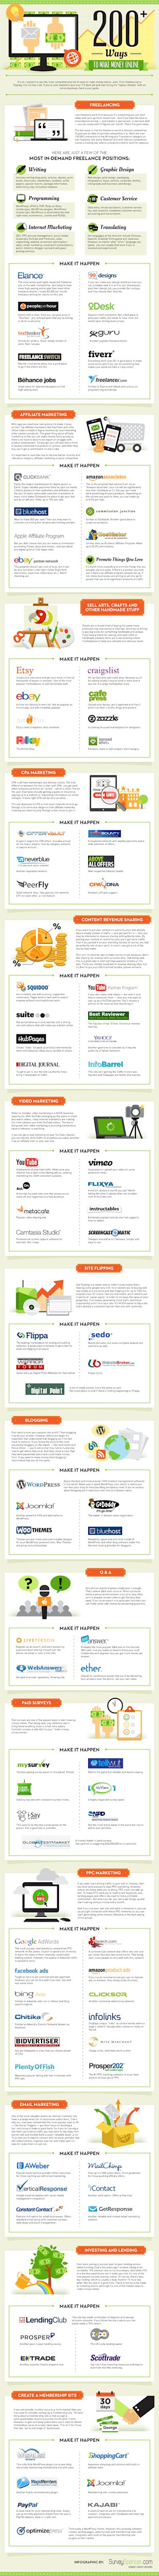 200 Ways To Make Money Online (Infographic) image make money online infographic new2